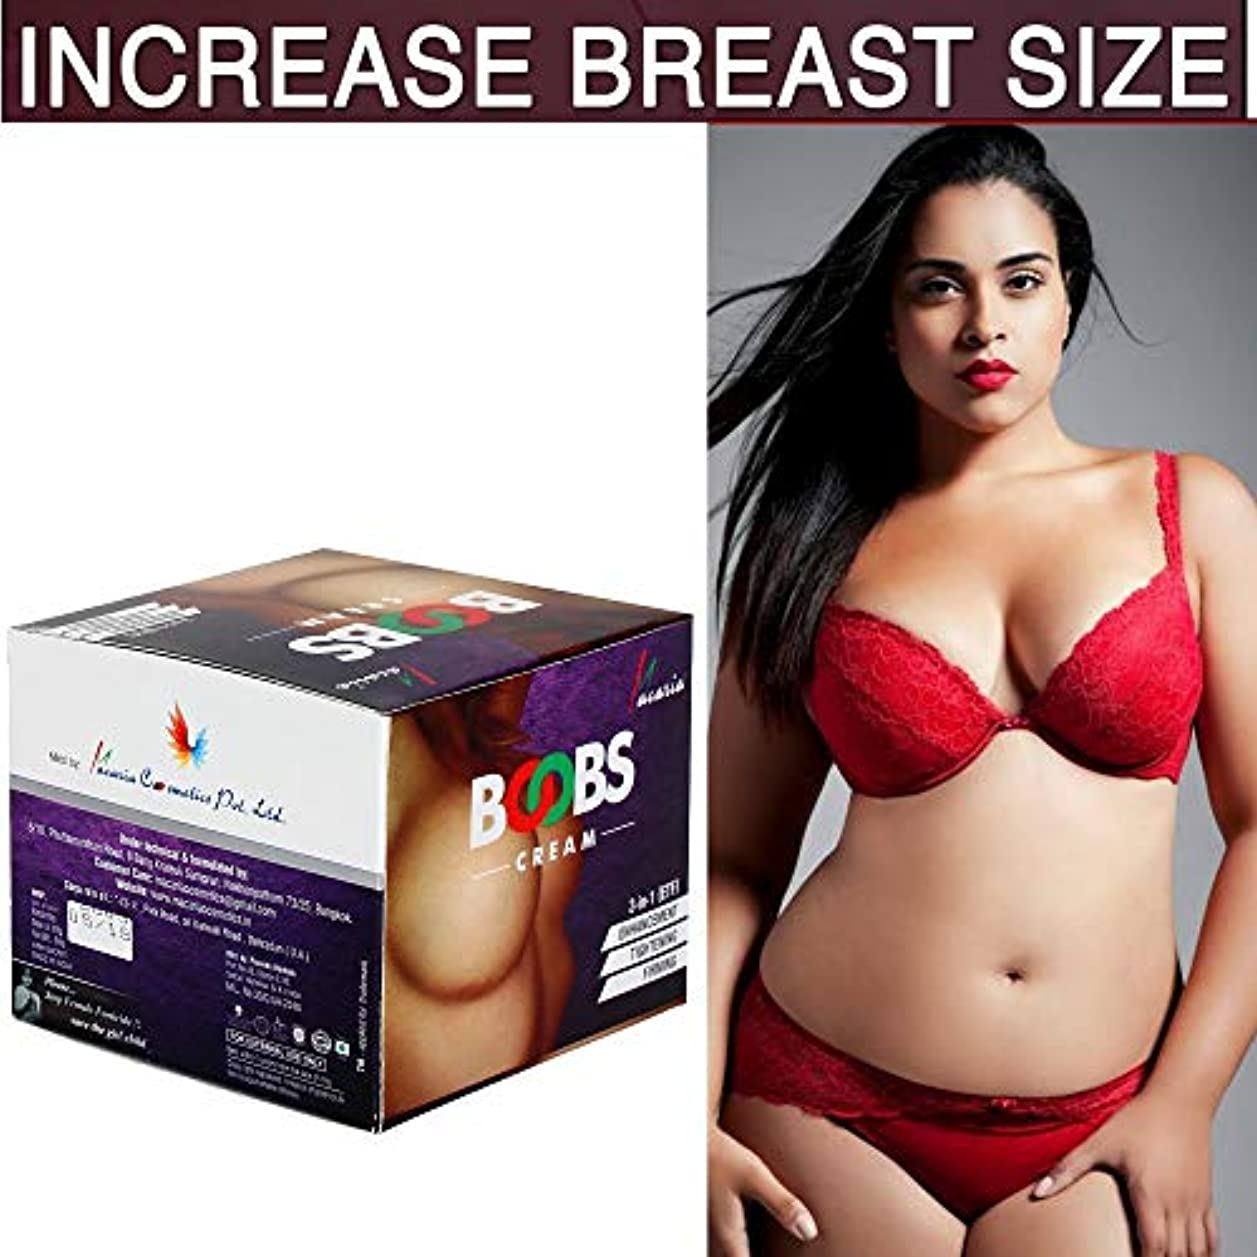 INSTANT LARGER BOOBS CREAM GEL & LOTION